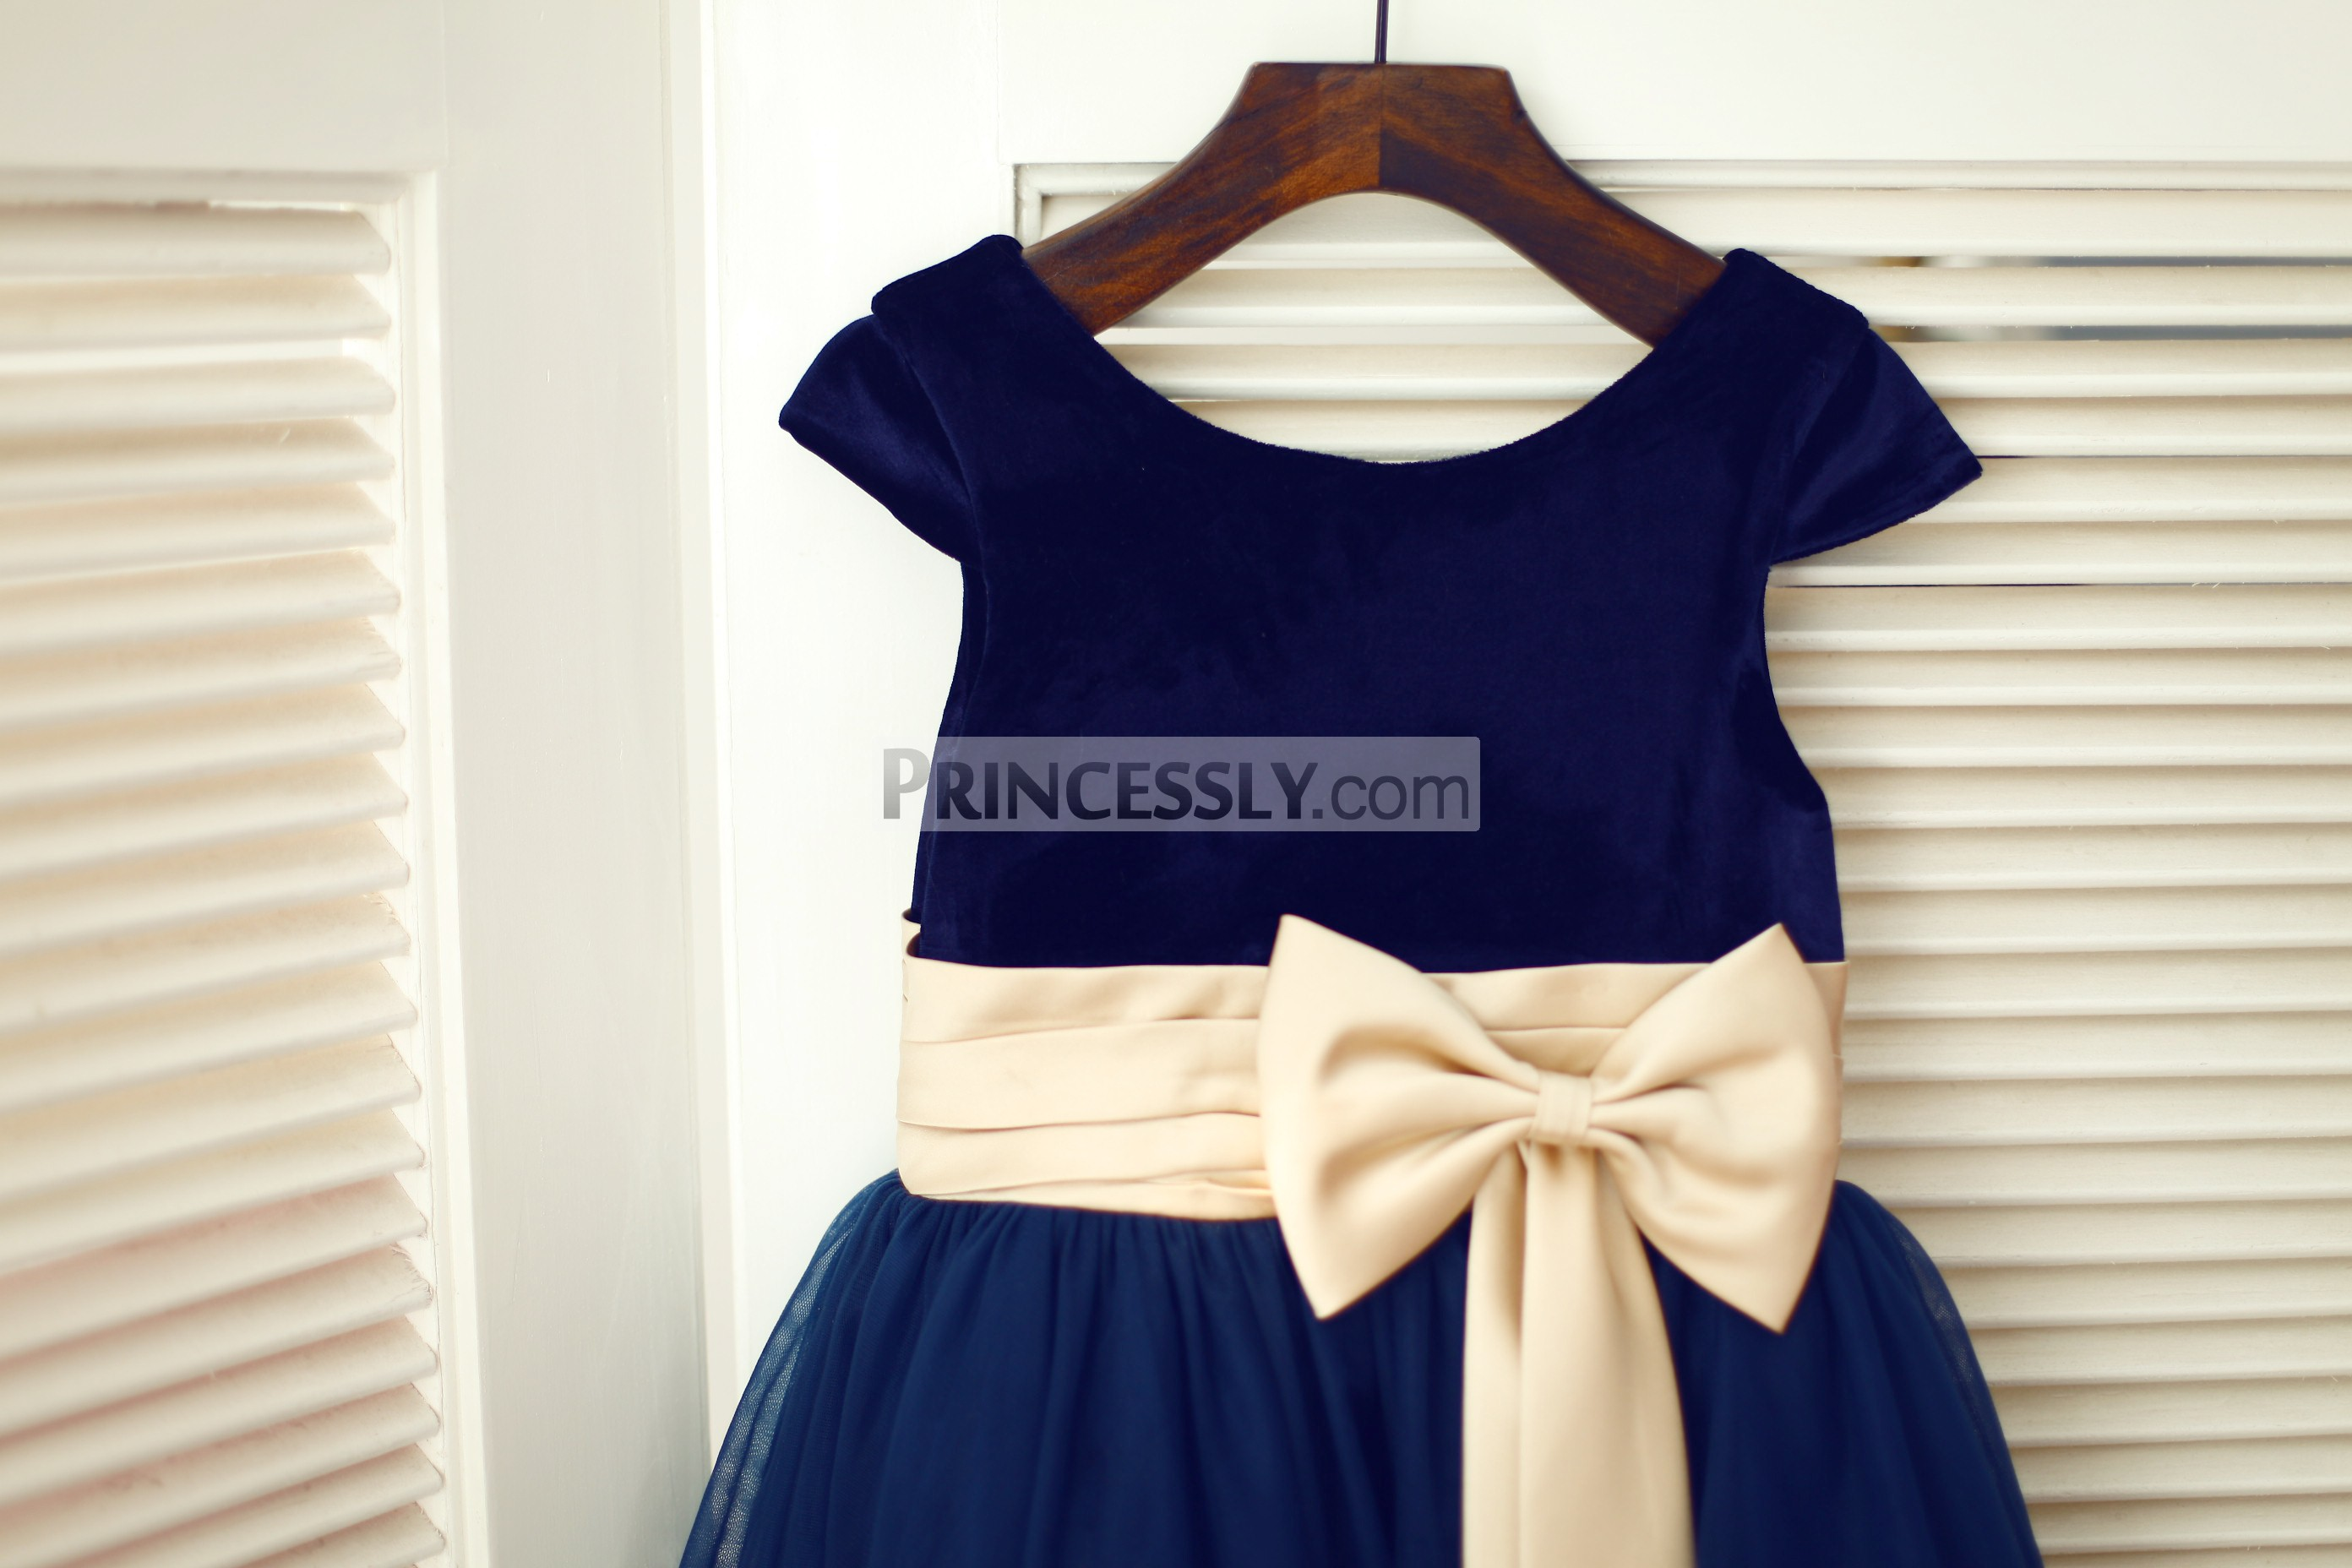 Scoop neckline cap sleeves navy blue velvet bodice with pre-made bow